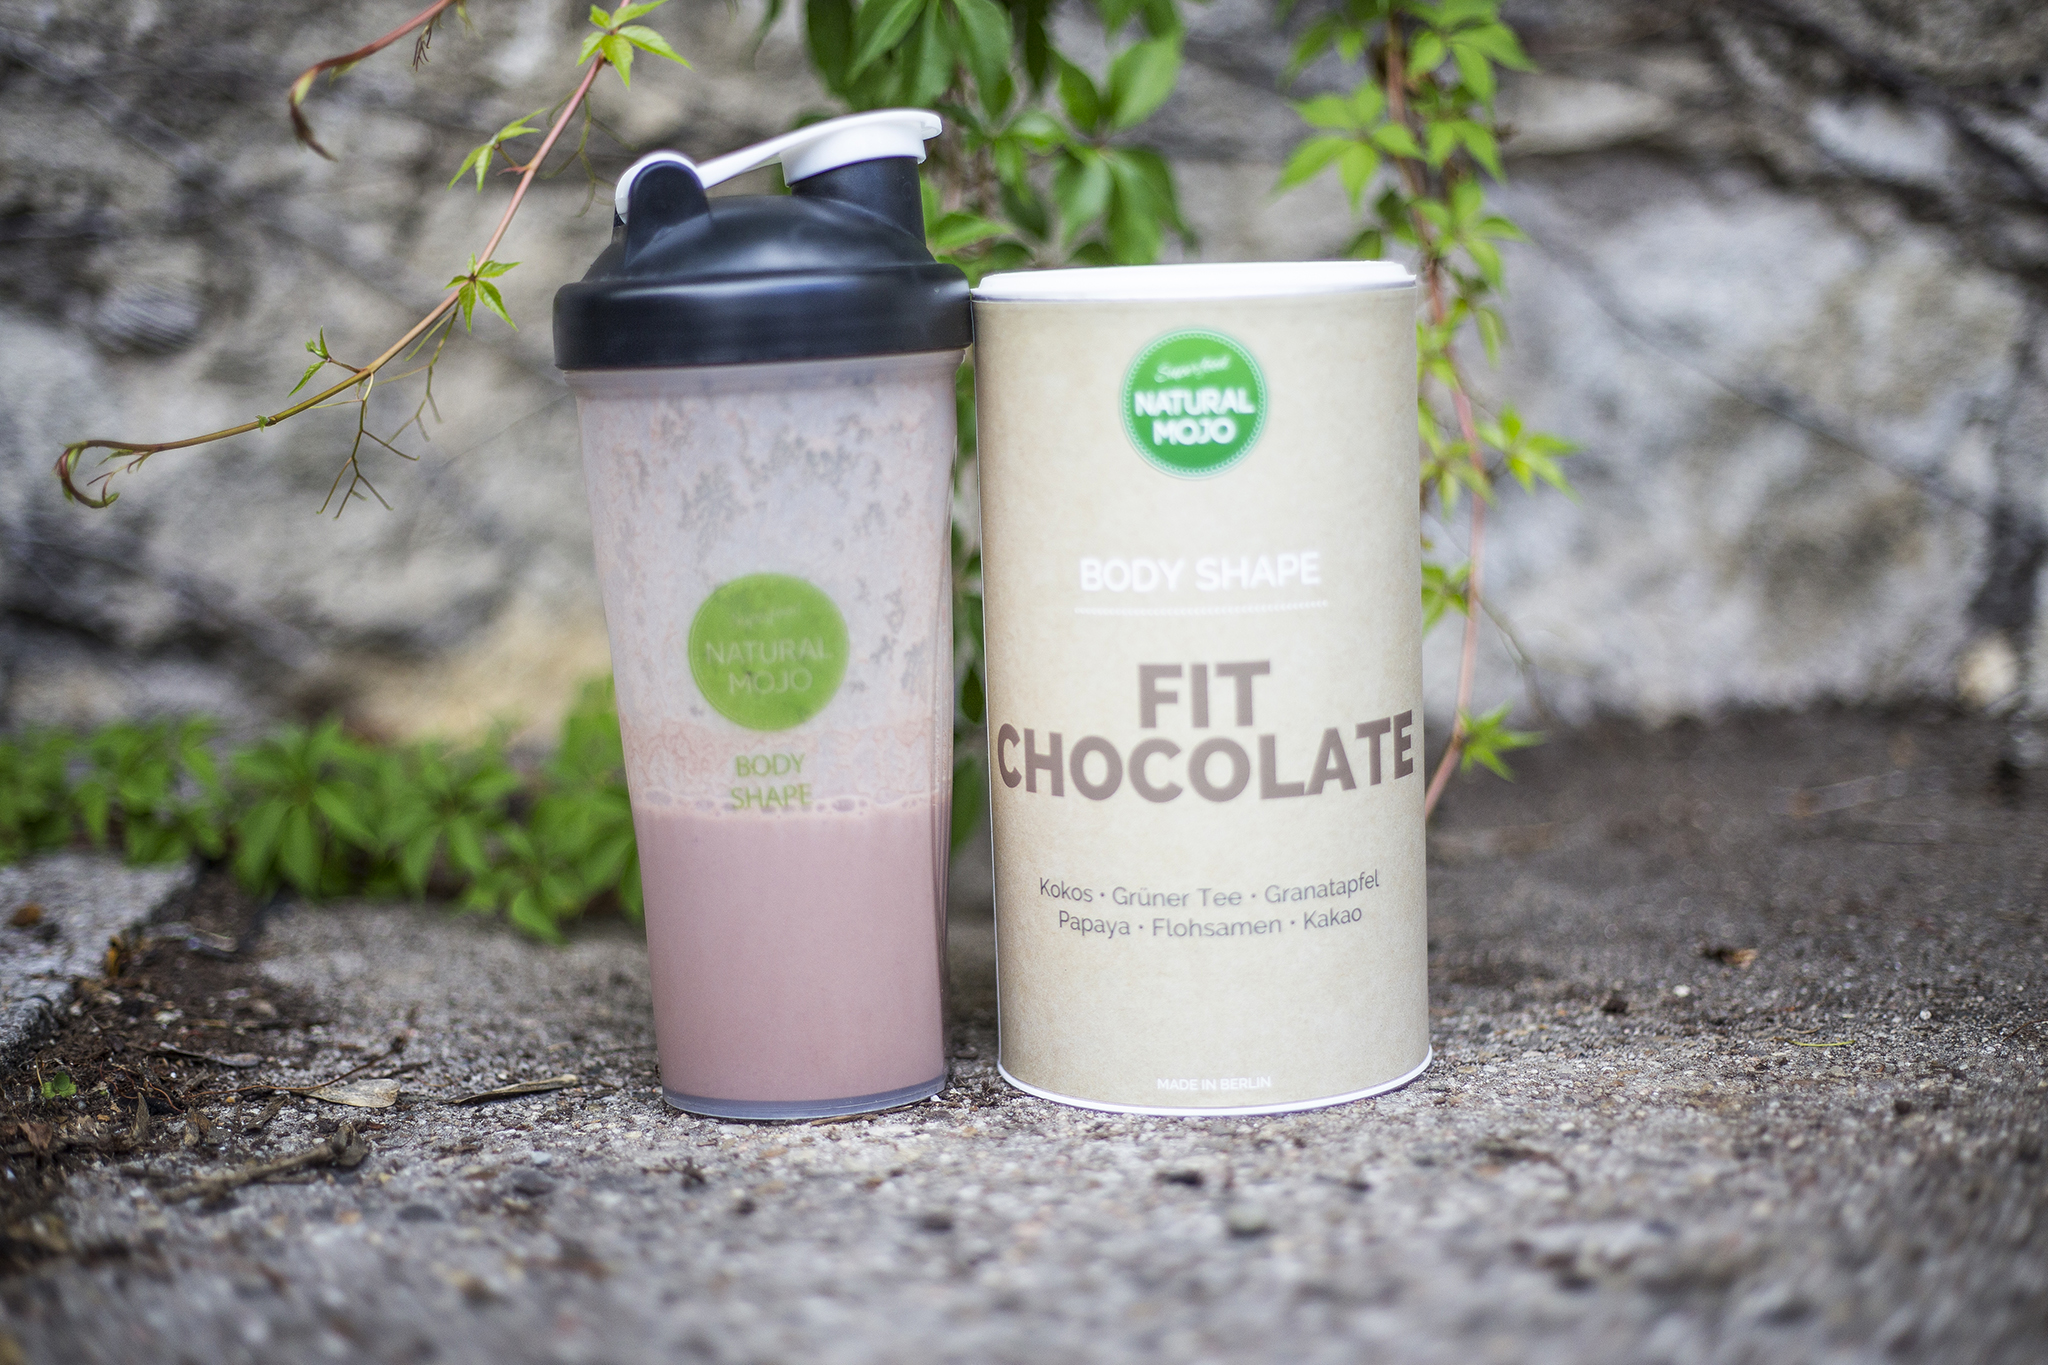 Natural Mojo-Fit Choclate_5